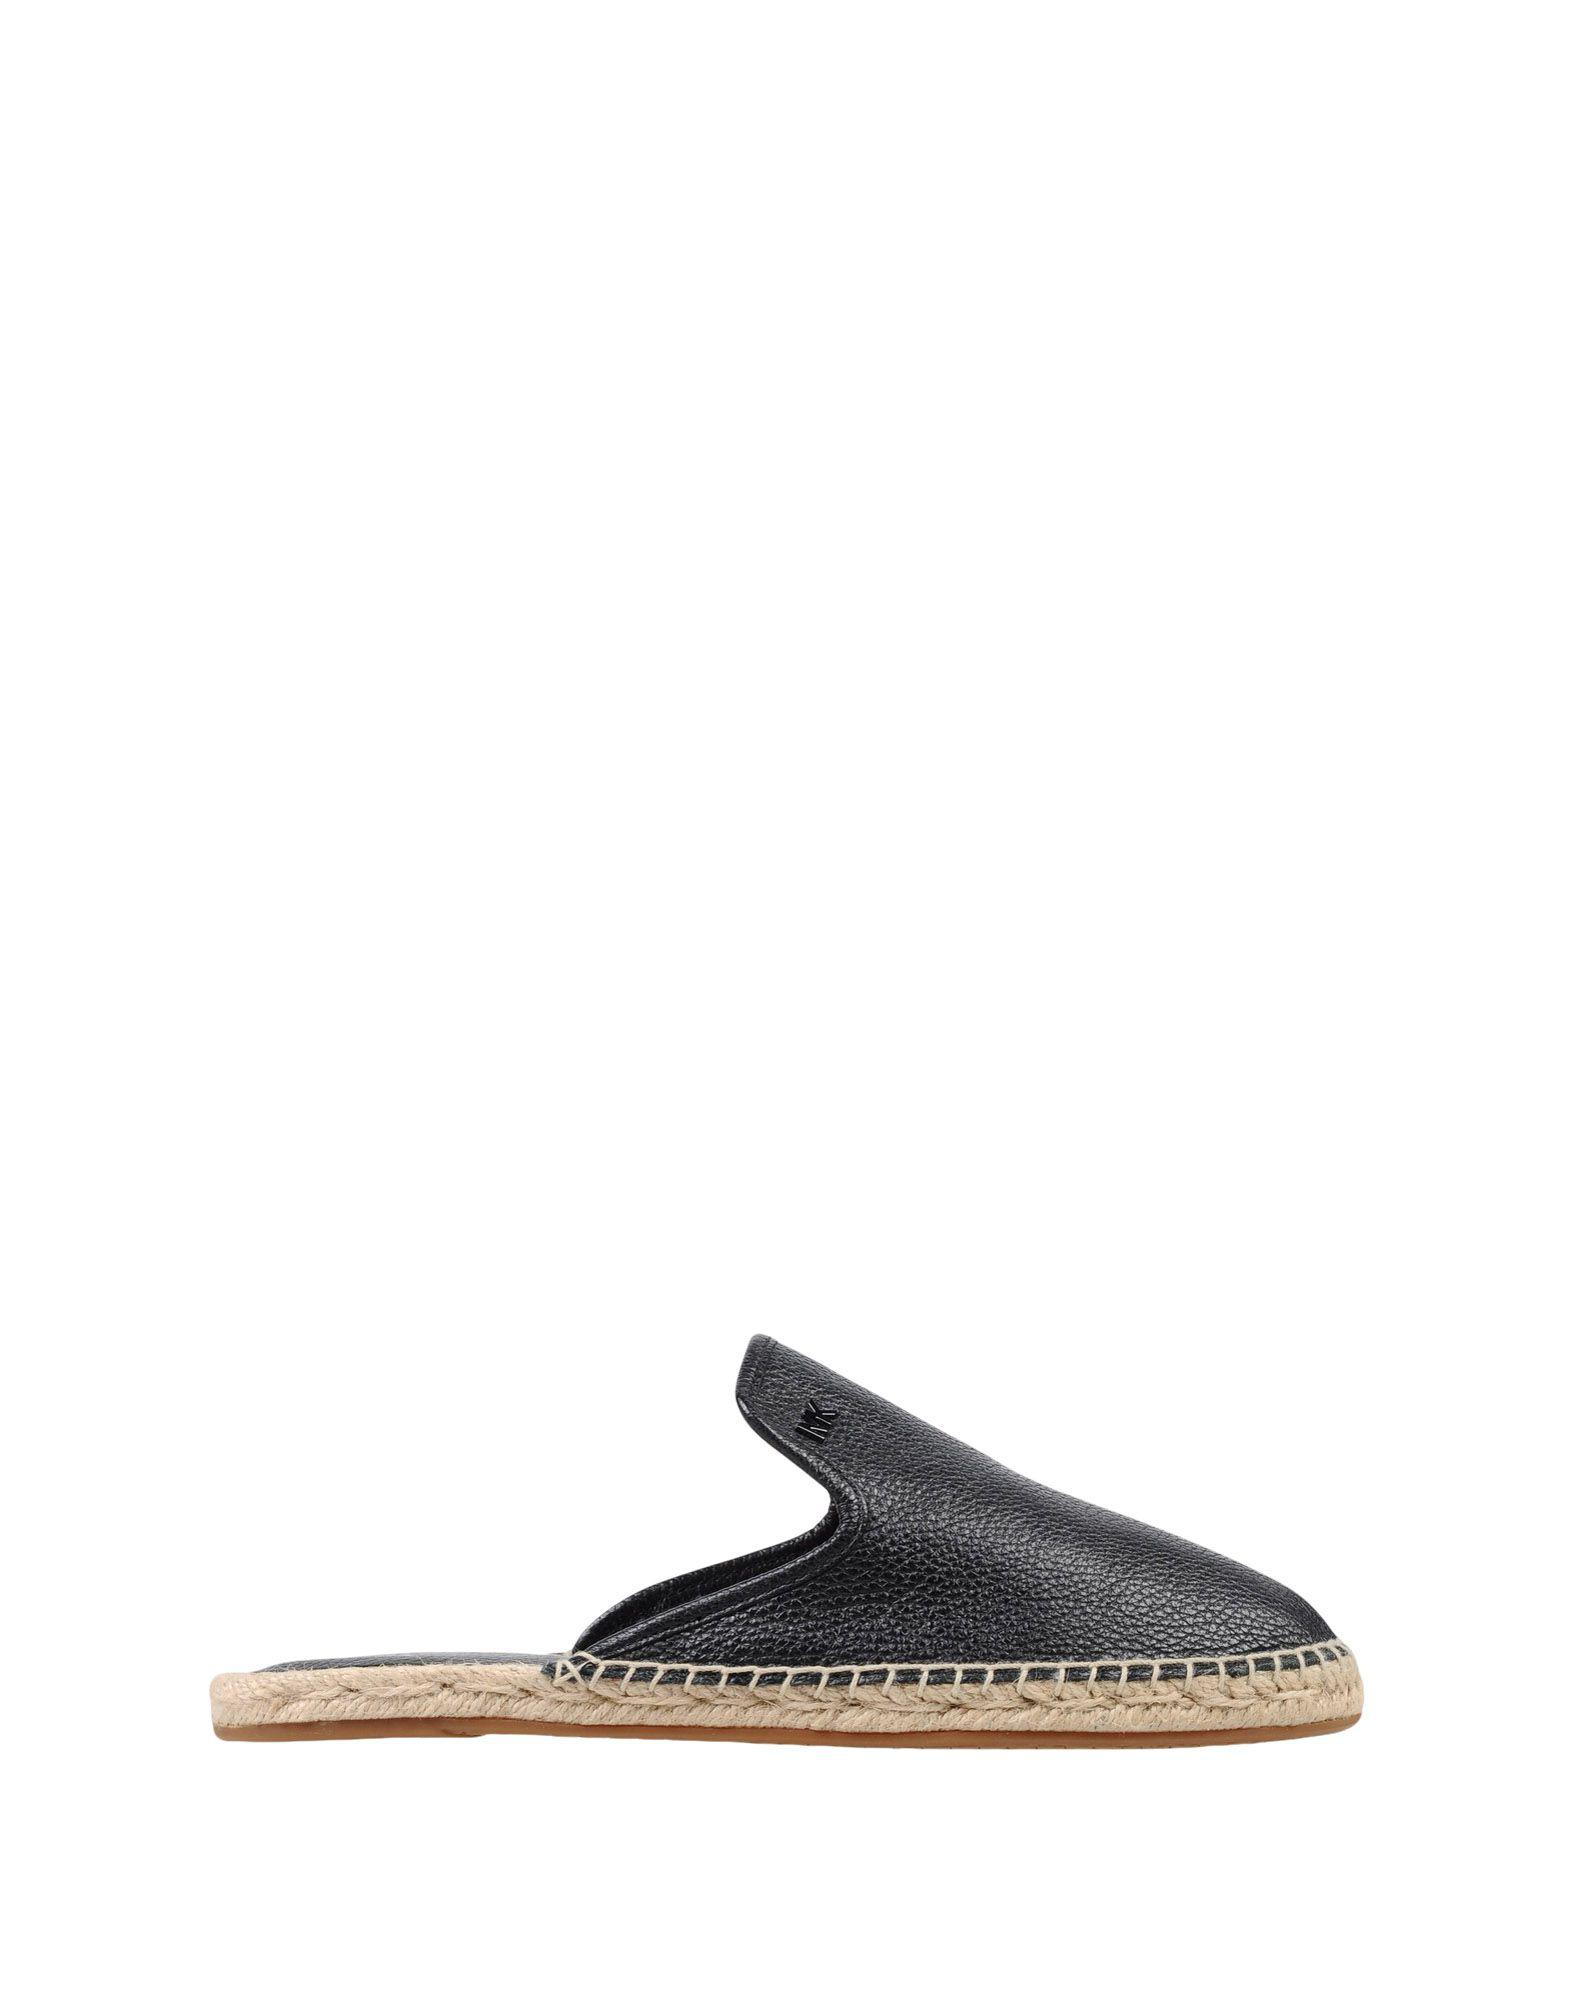 MICHAEL Michael Kors Leather Mules in